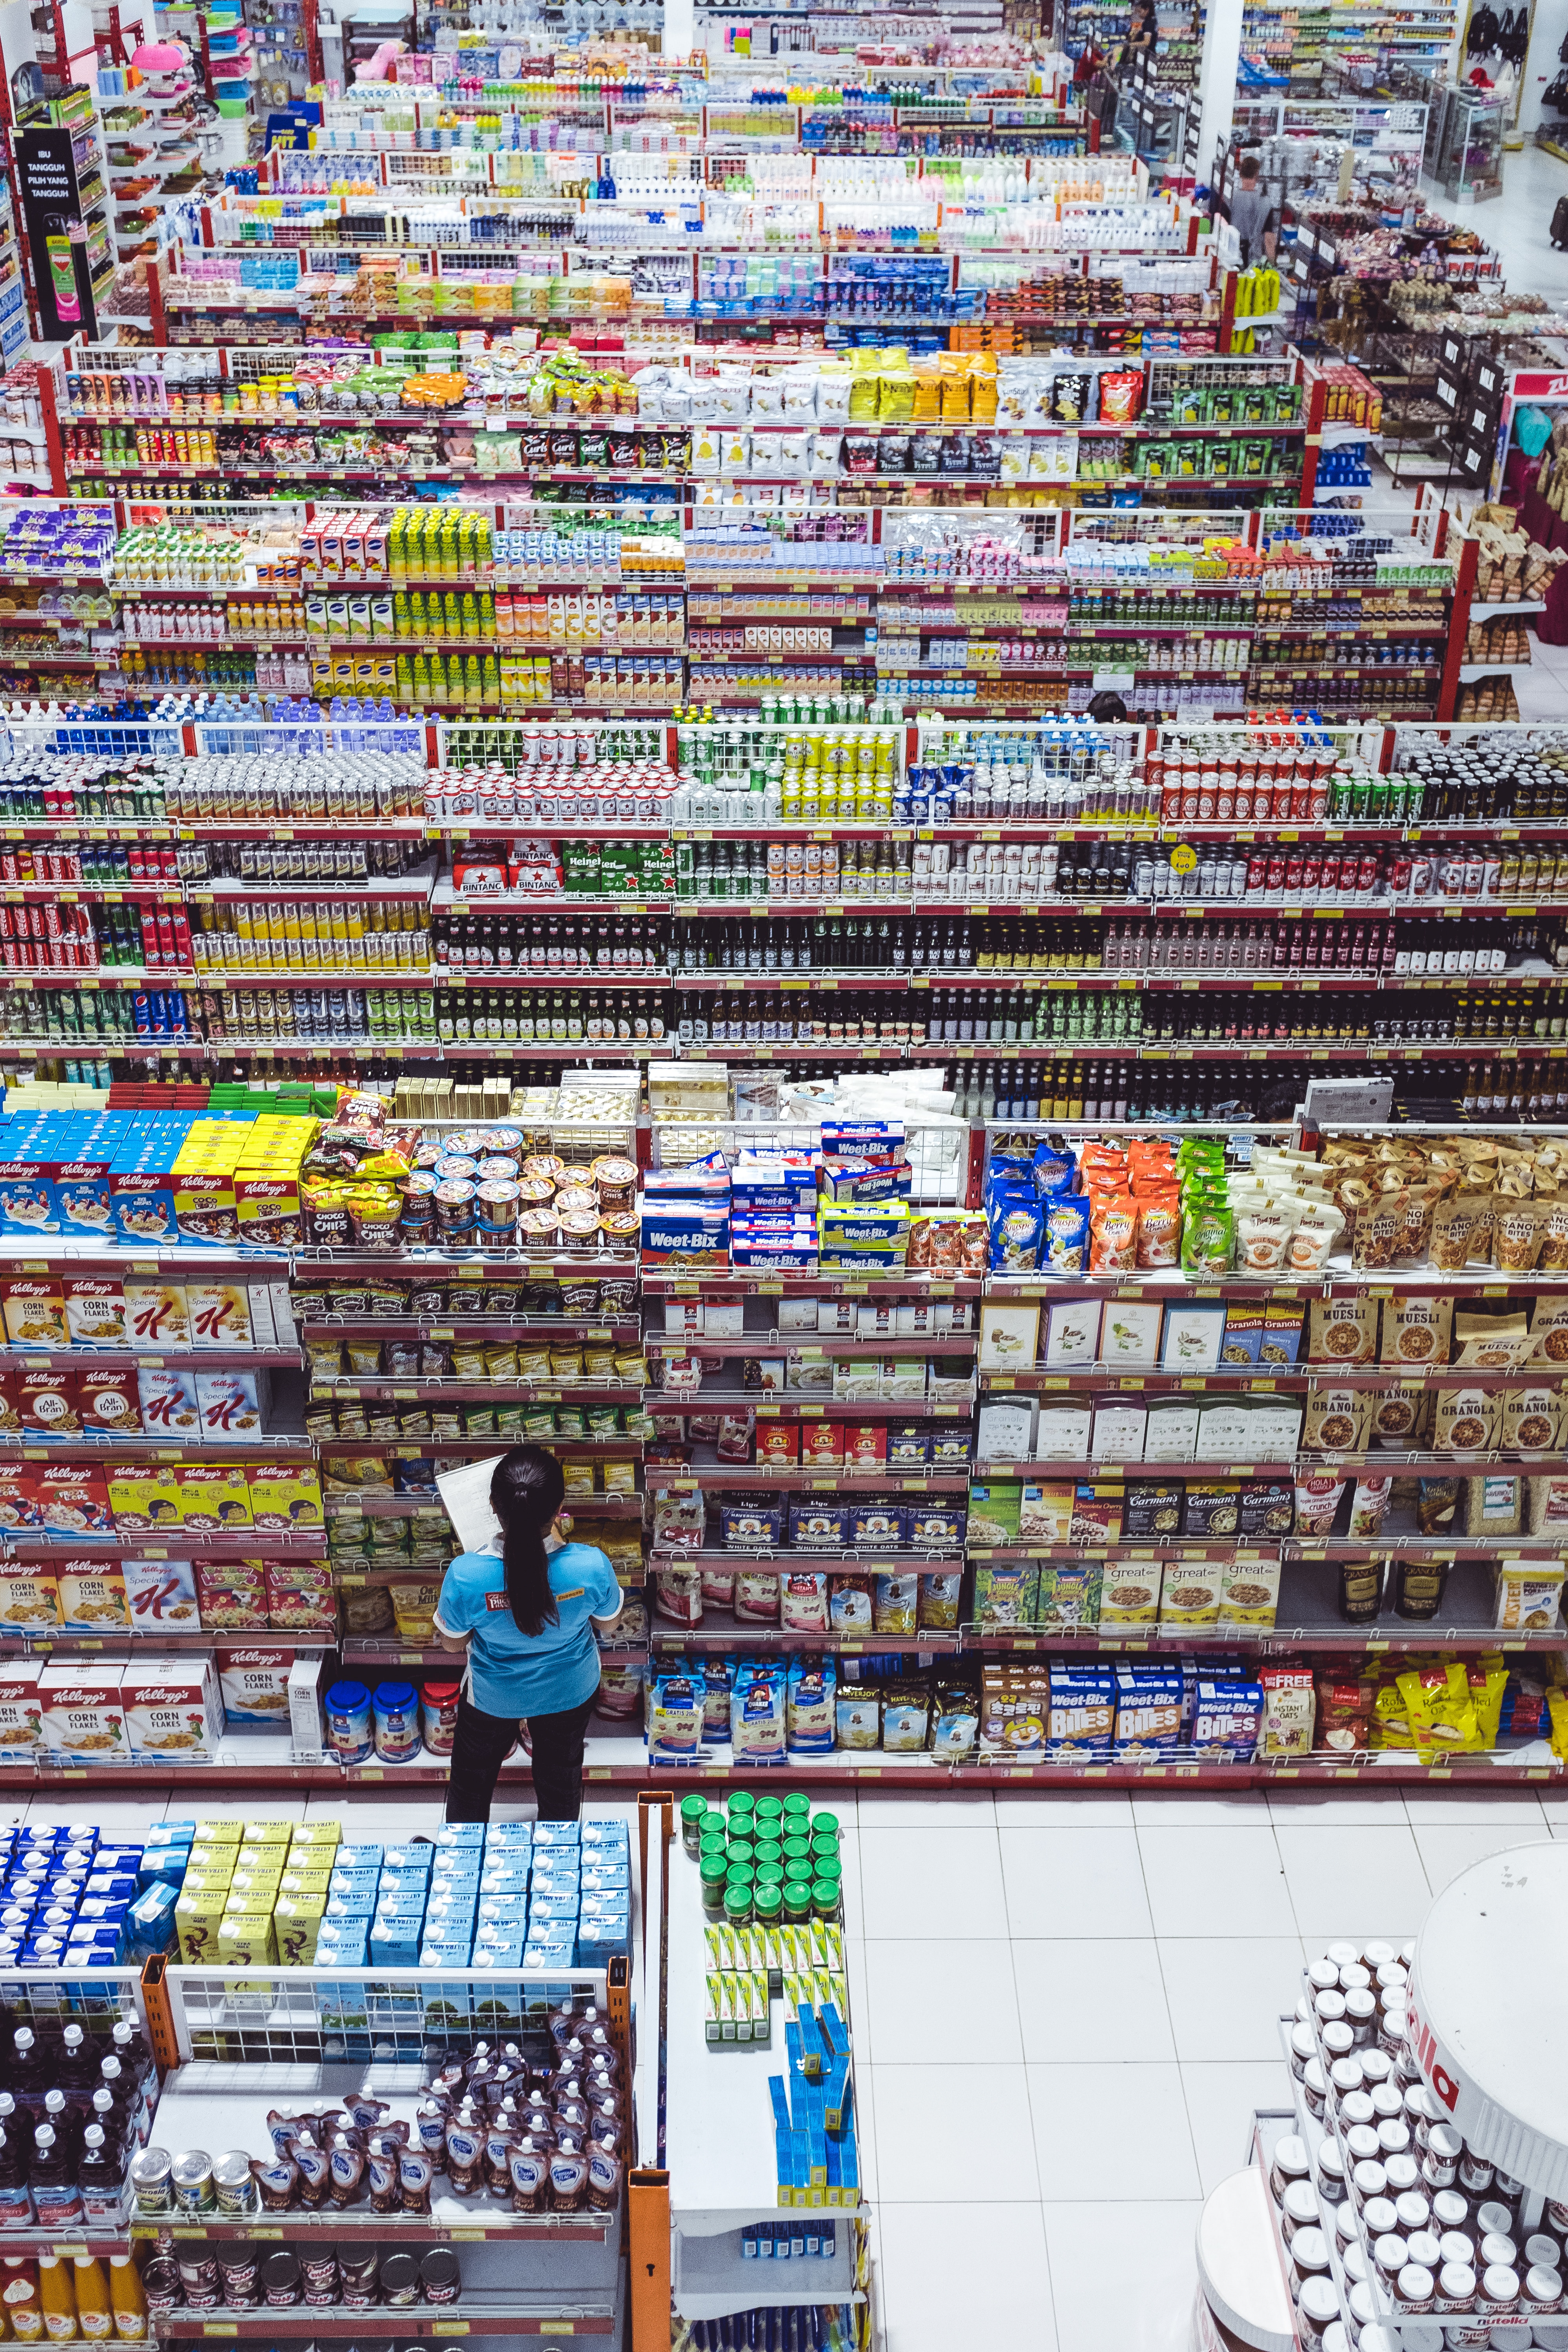 Photograph of an employee checking inventory levels on the shelves at a grocery store.